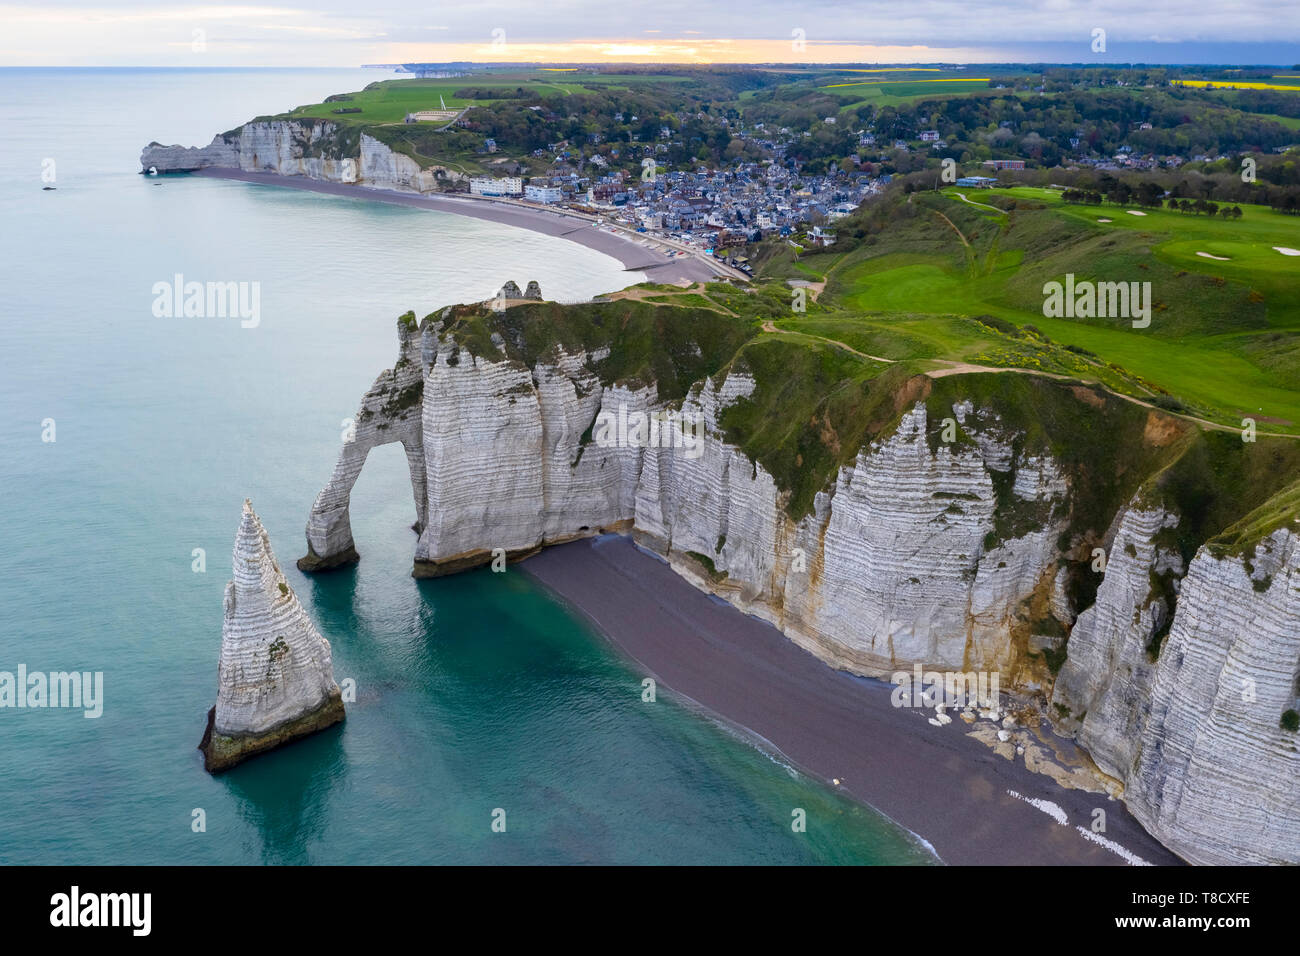 Aerial view of the cliffs of Etretat, Octeville sur Mer, Le Havre, Seine Maritime, Normandy, France, Western Europe. - Stock Image